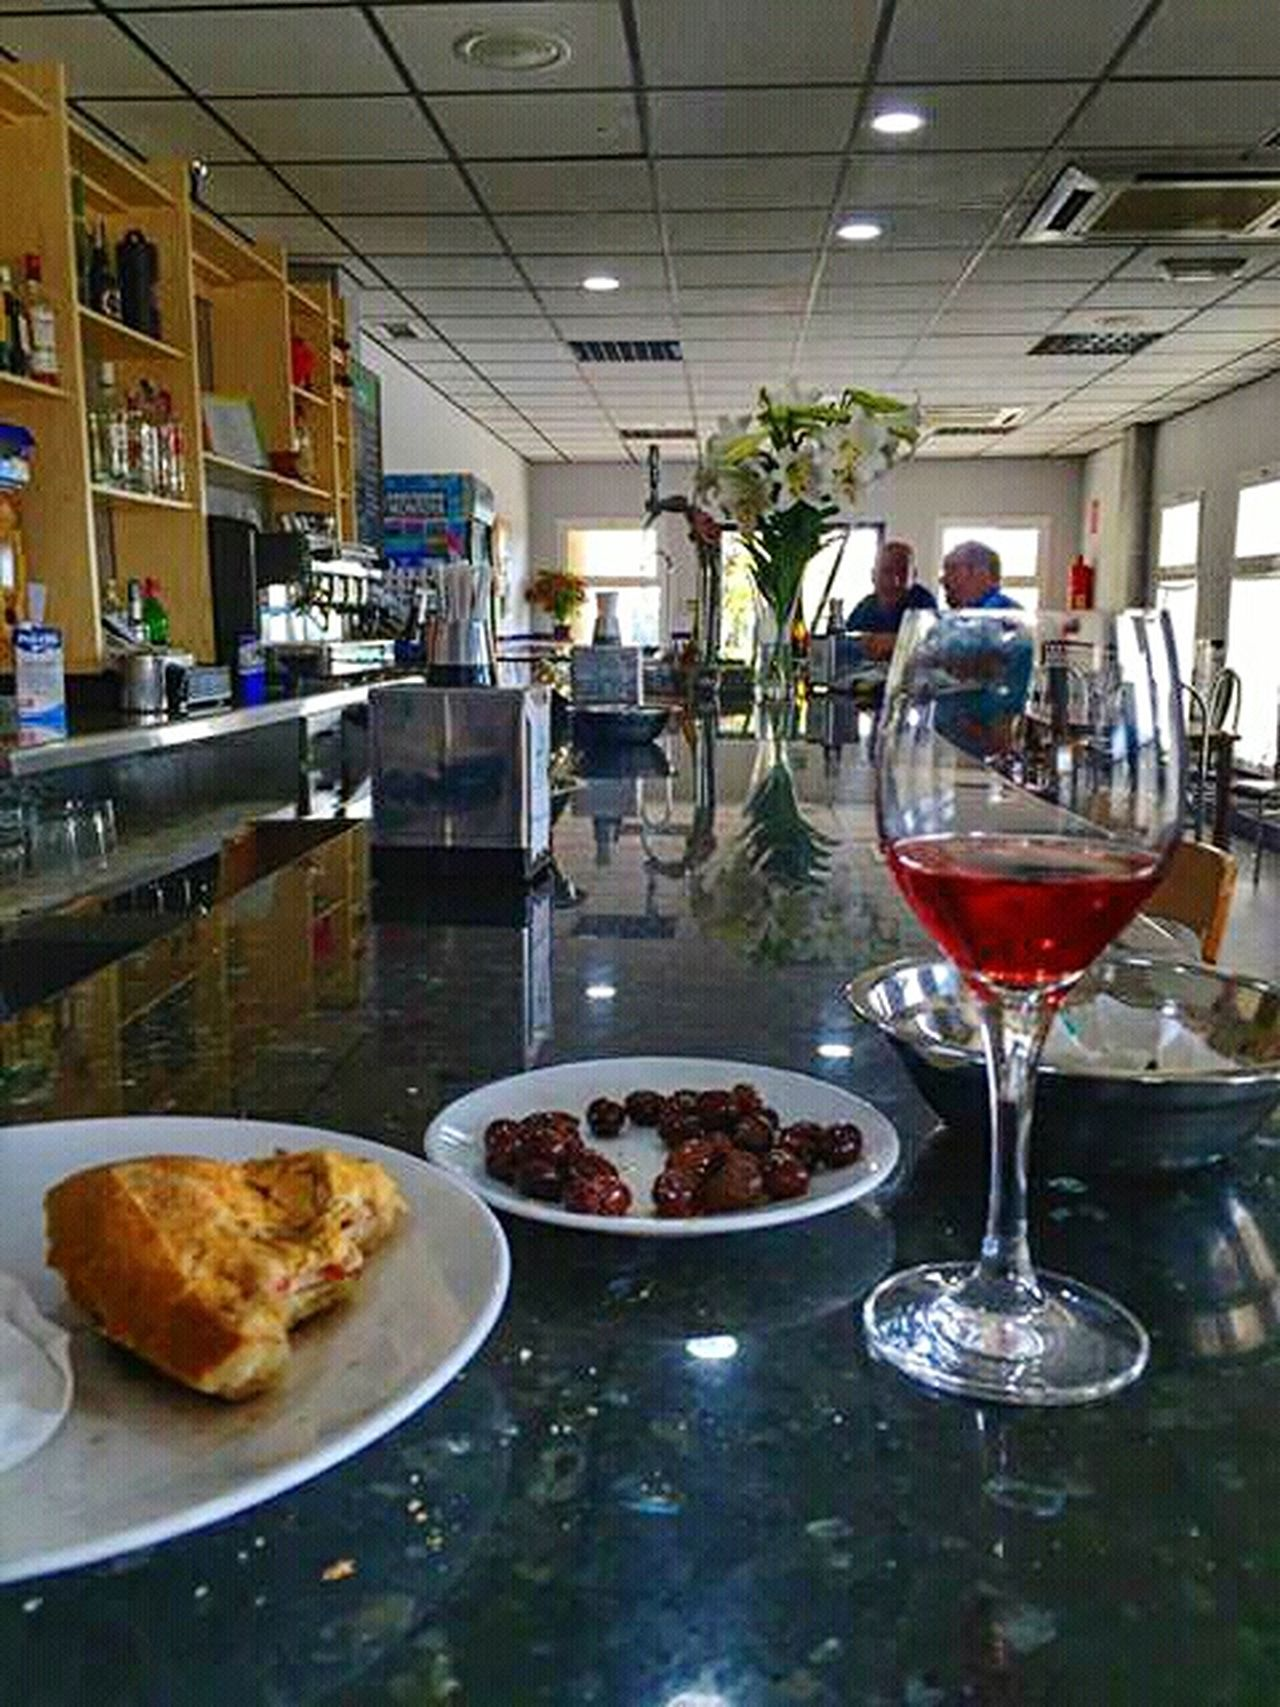 Bar Restaurant Restaurants Brunch Tapas Vino Wine Cup Of Wine Copa De Vino Vino The Mix Up